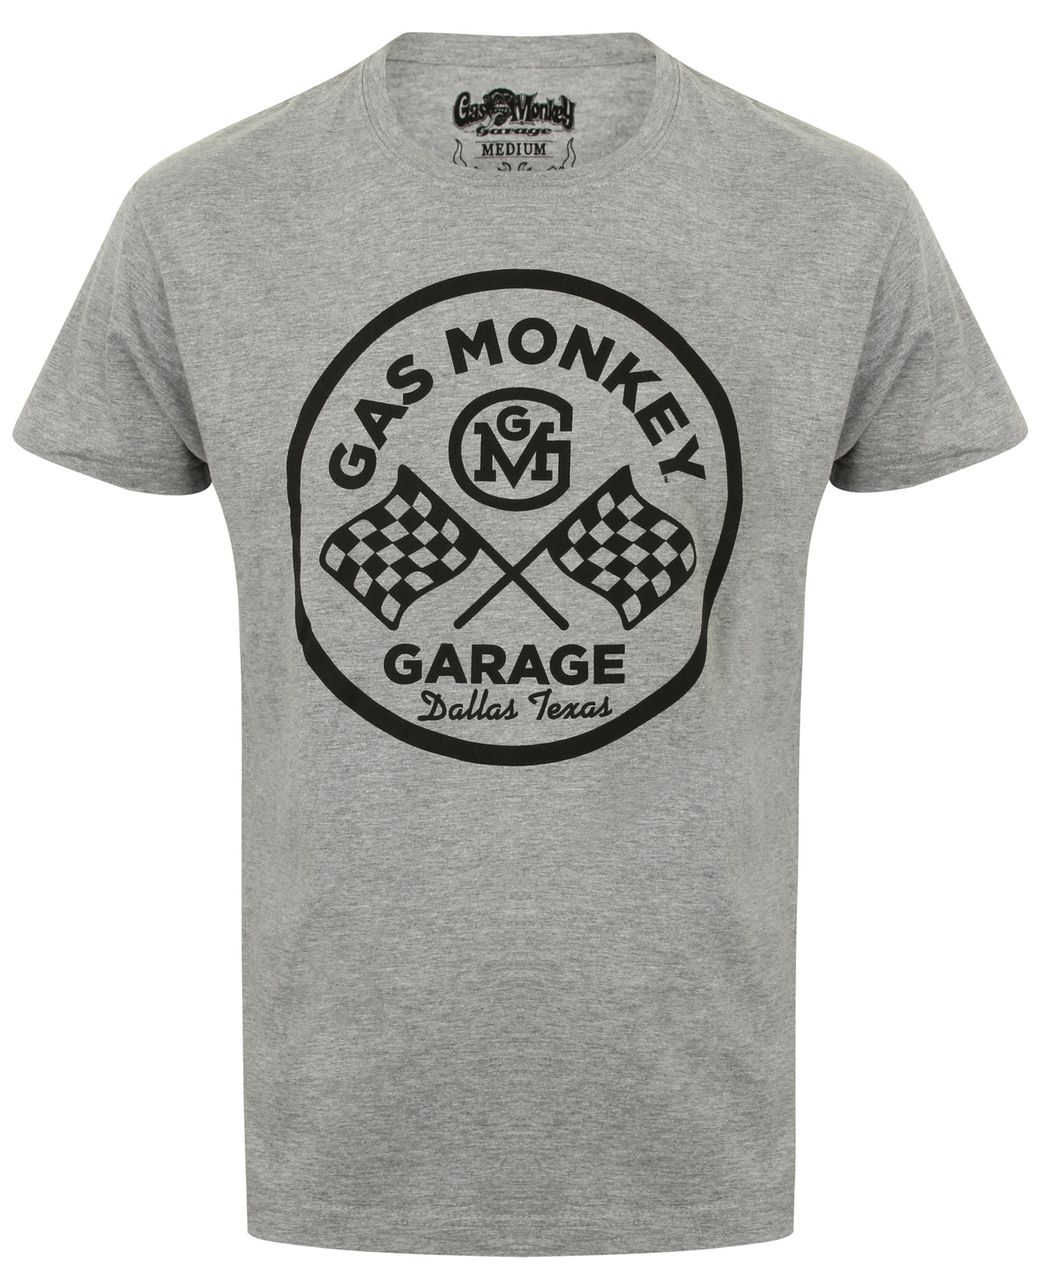 Gas Monkey Garage Officially Licensed Most Badass Hot Rod Shop T-Shirt Maglia Maglietta GMG